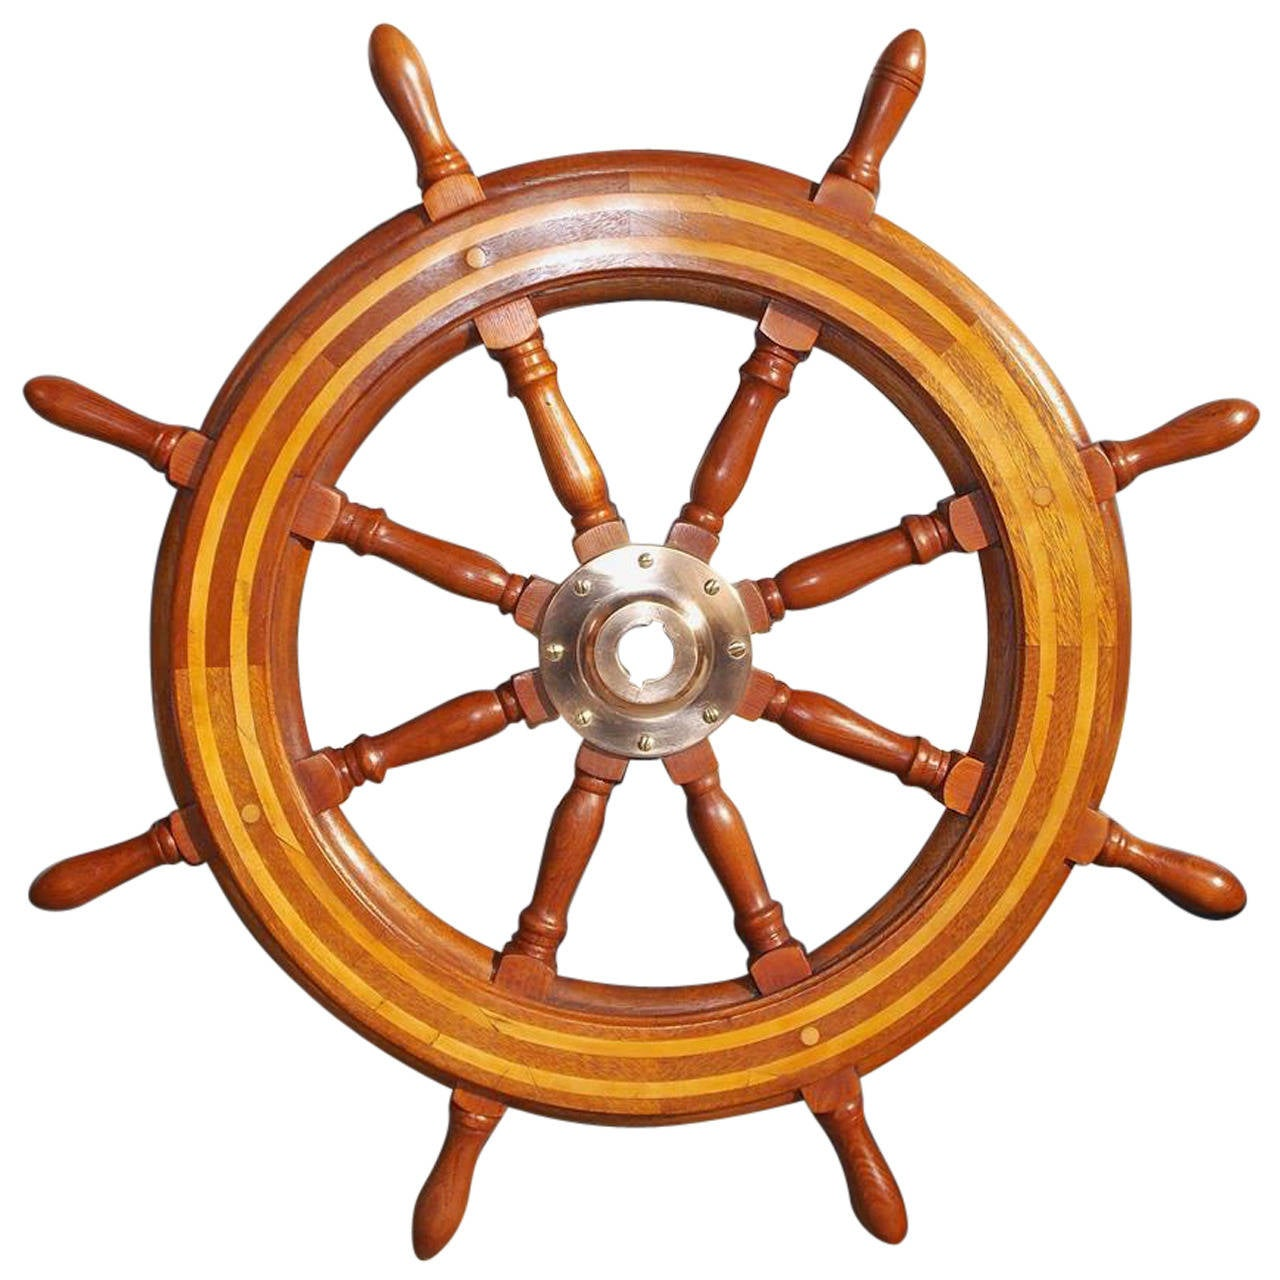 American Walnut and Maple Inlaid Ships Wheel. Circa 1850